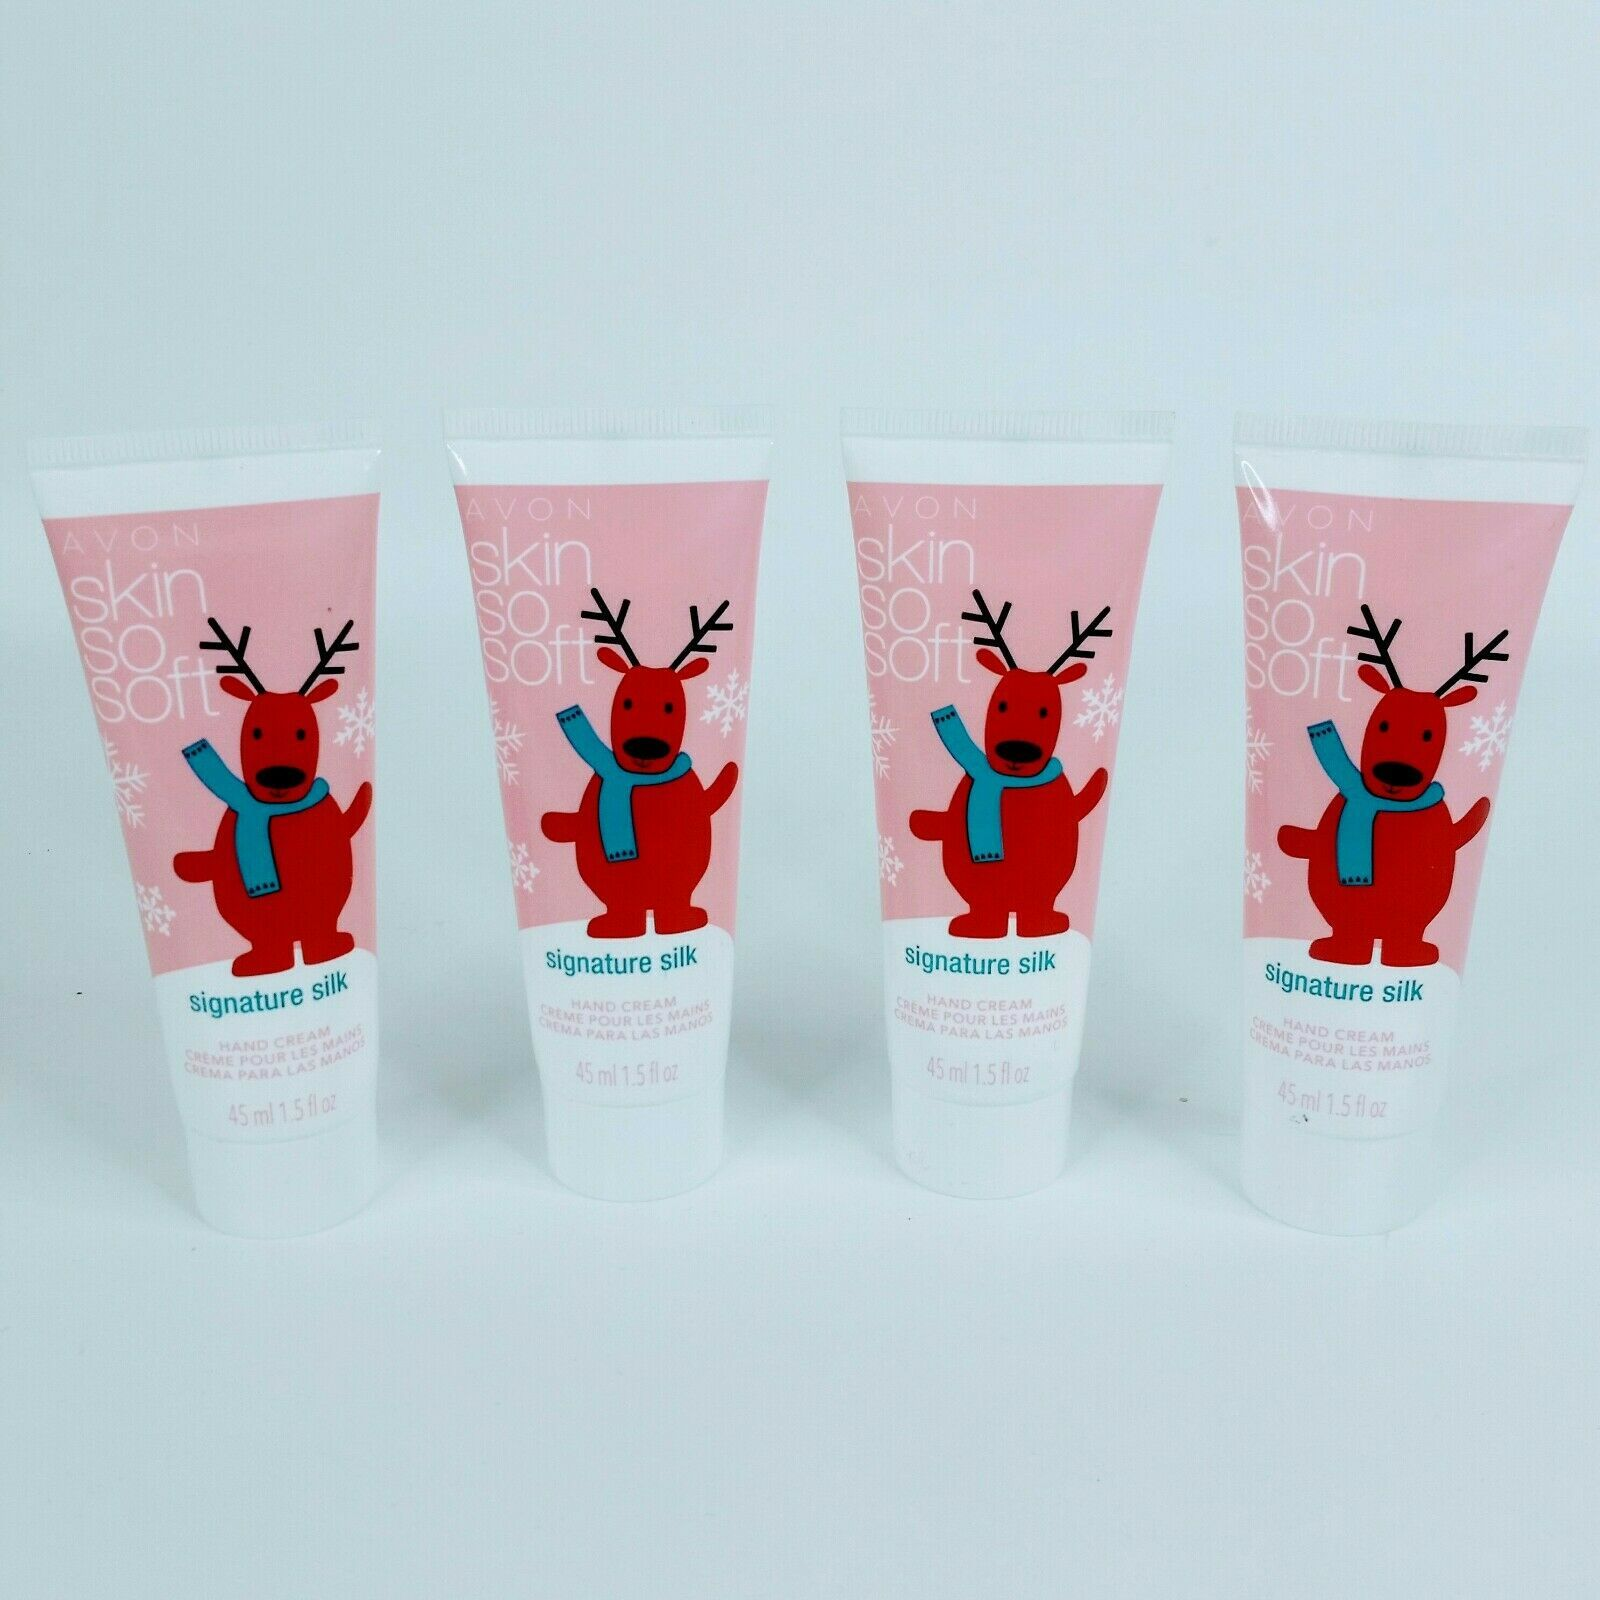 4X Avon Hand Cream Mini 1.5 oz Skin So Soft Signature Silk Formula Reindeer